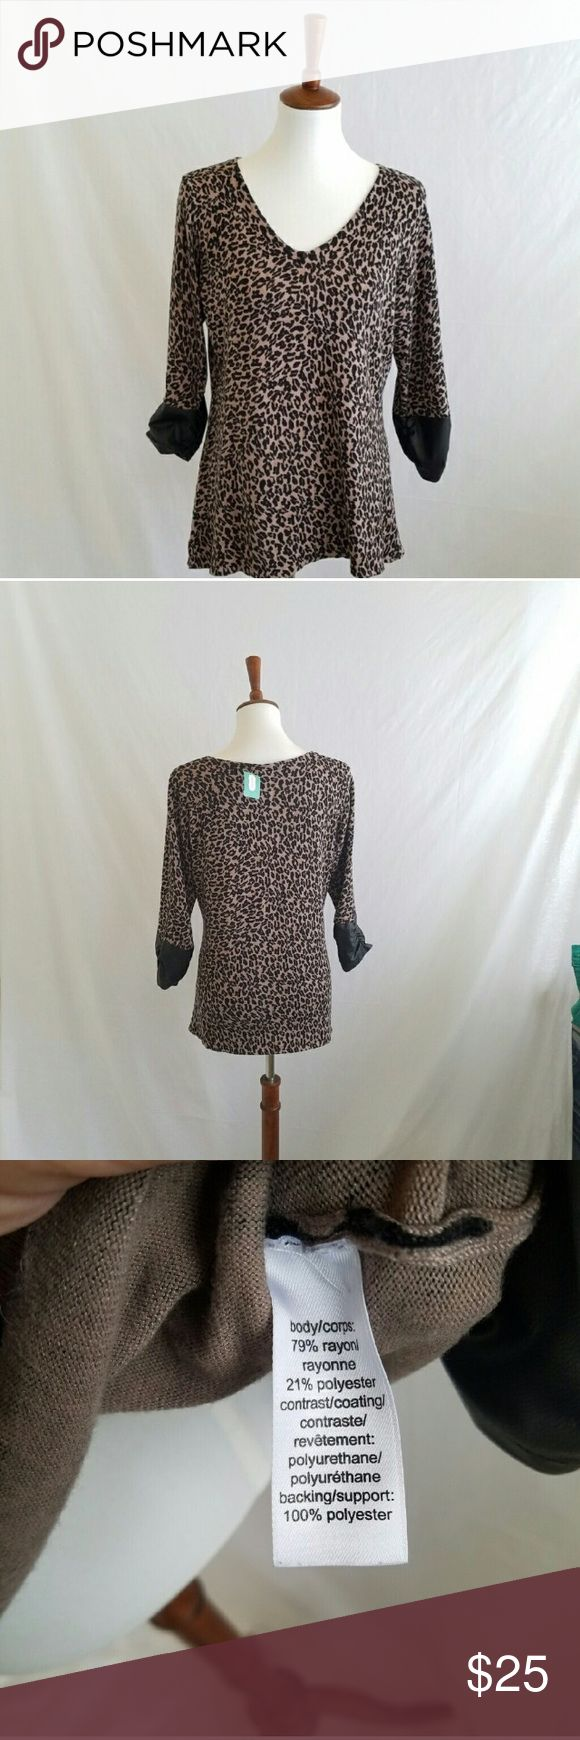 NEW Maurices Leather Cuffed Leopard Sweater New . Sleeves have leather like cuffs with rouching.  Stretchy .  #051504 Maurices Sweaters